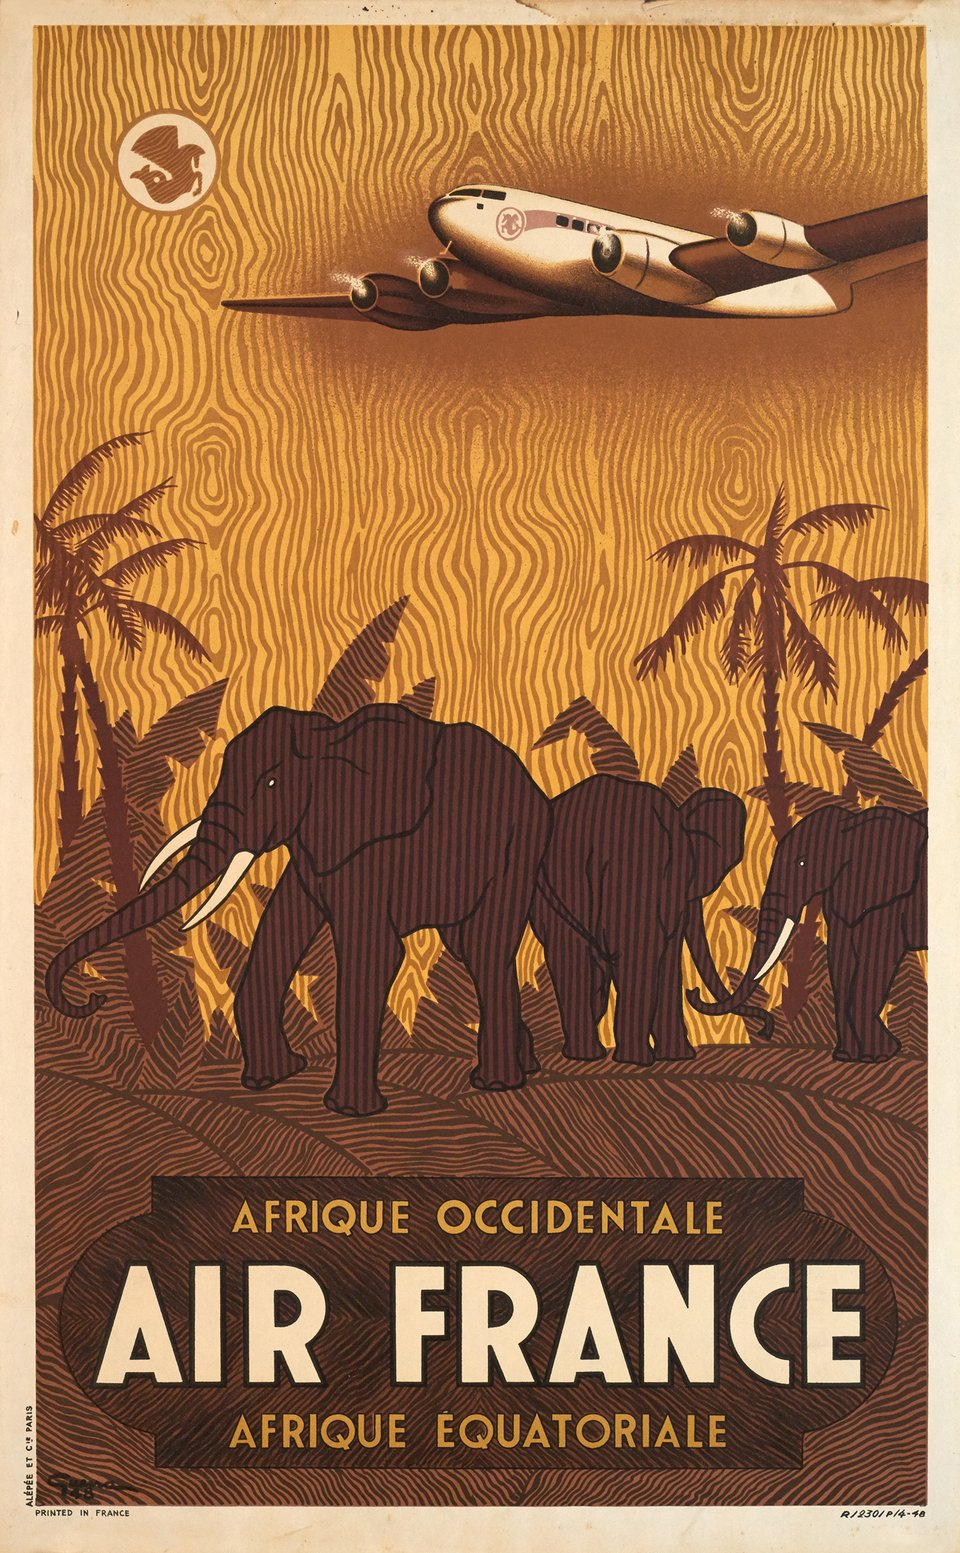 Air France, Afrique Occidentale & Equatoriale – Affiche ancienne – Vincent GUERRA – 1948